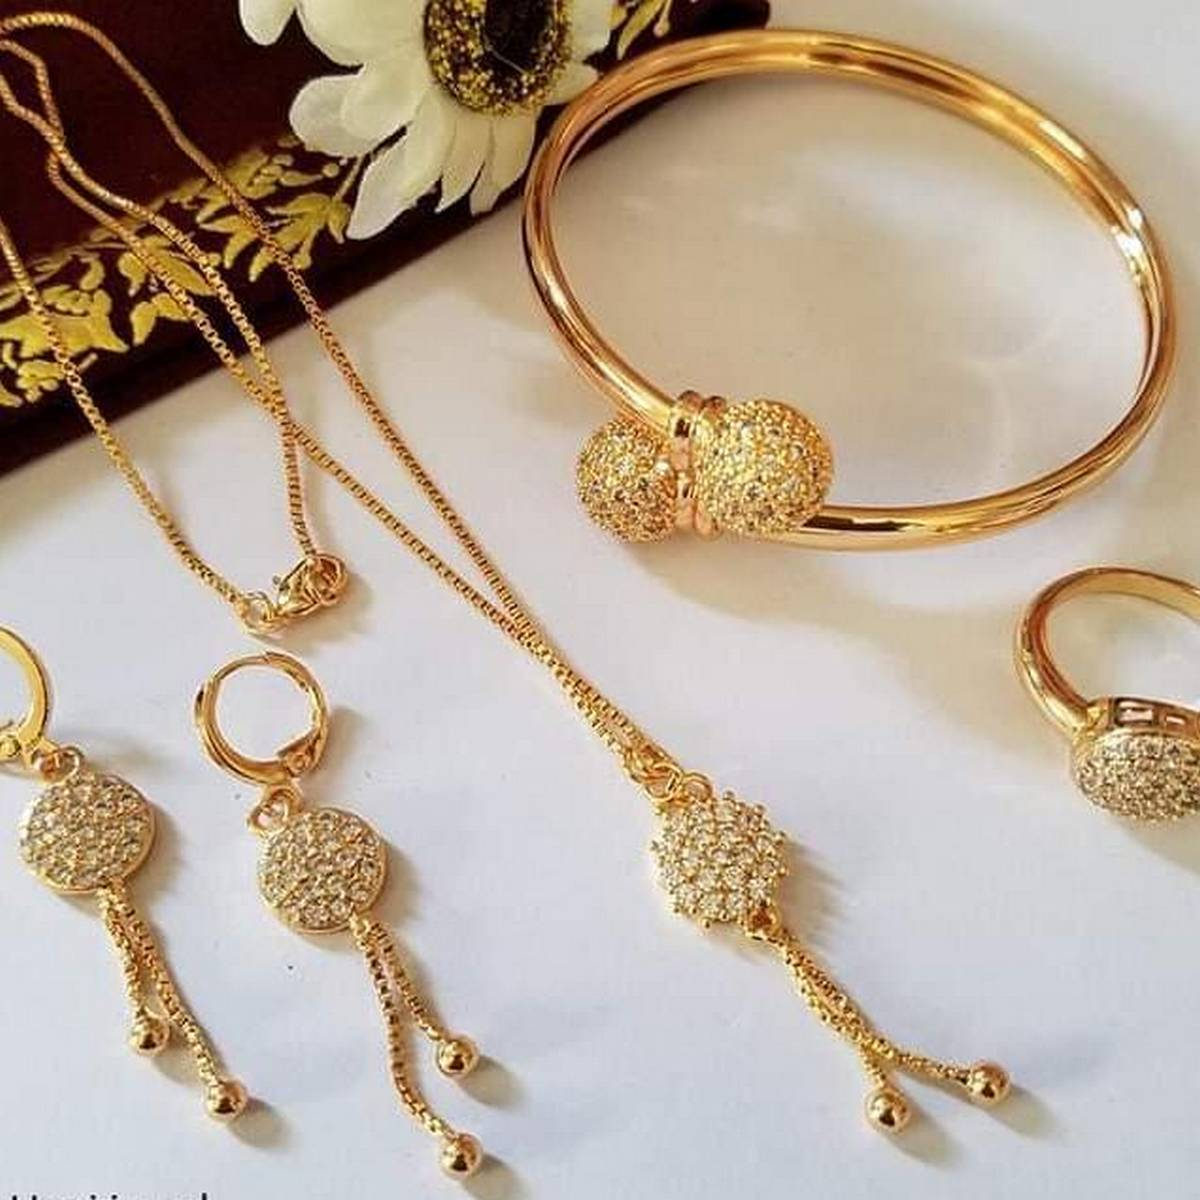 Set gold plated with braslat for her new style  Long lastining polish  New Design  Fashionable Style  You can use one years